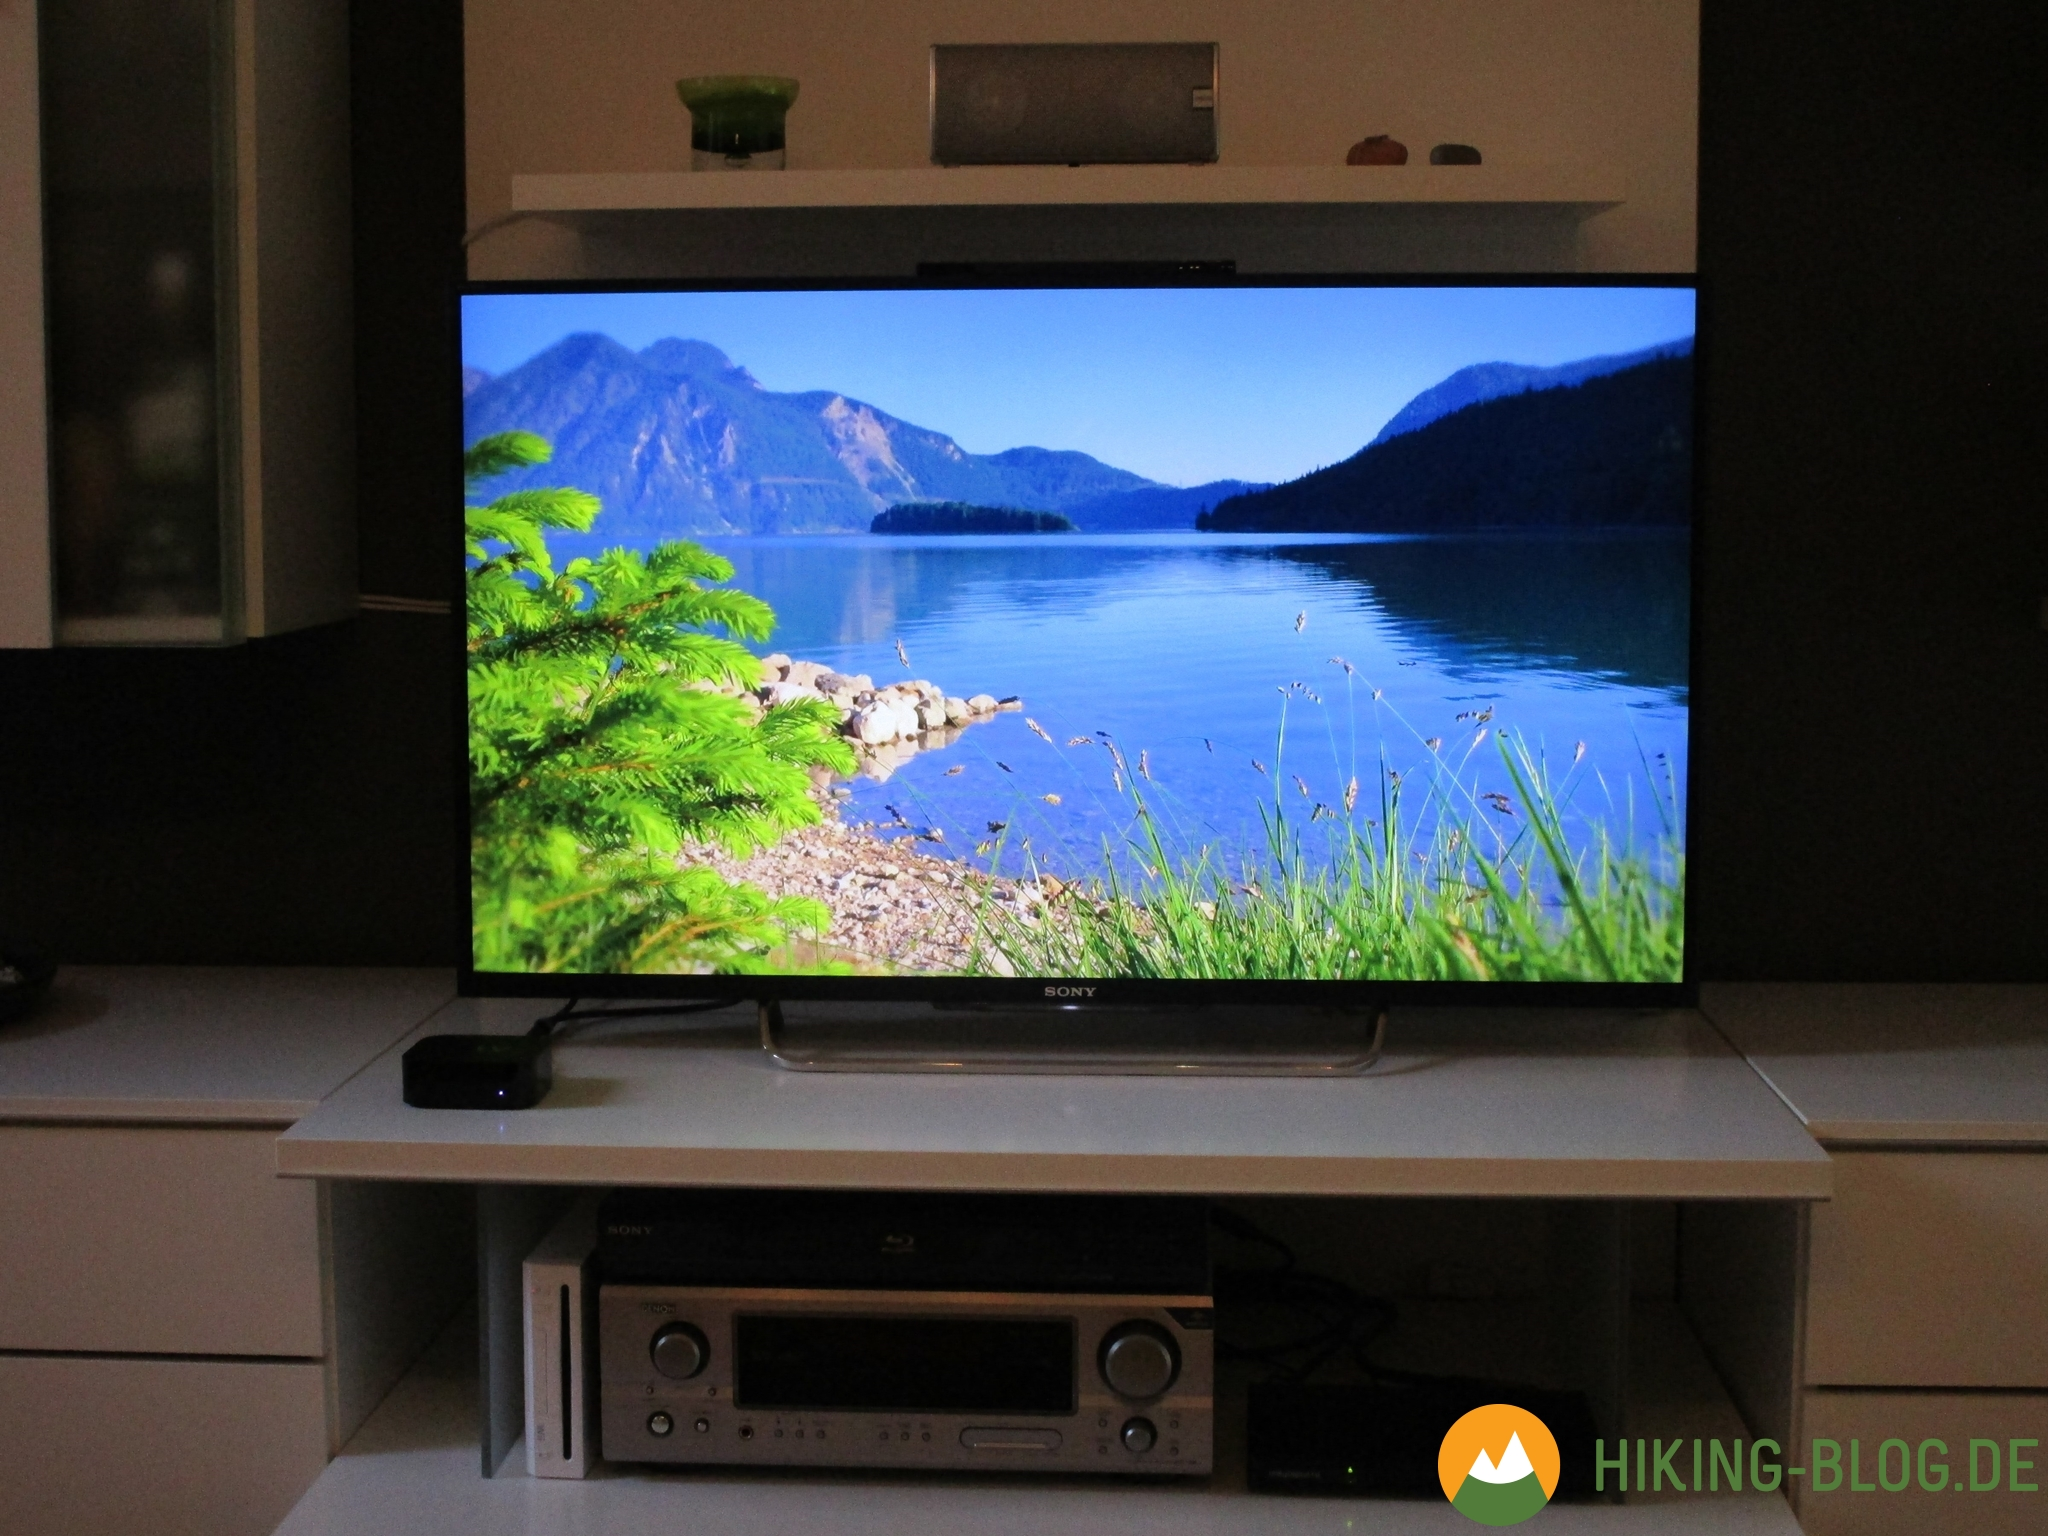 appletv4-outdoor-feeling-07